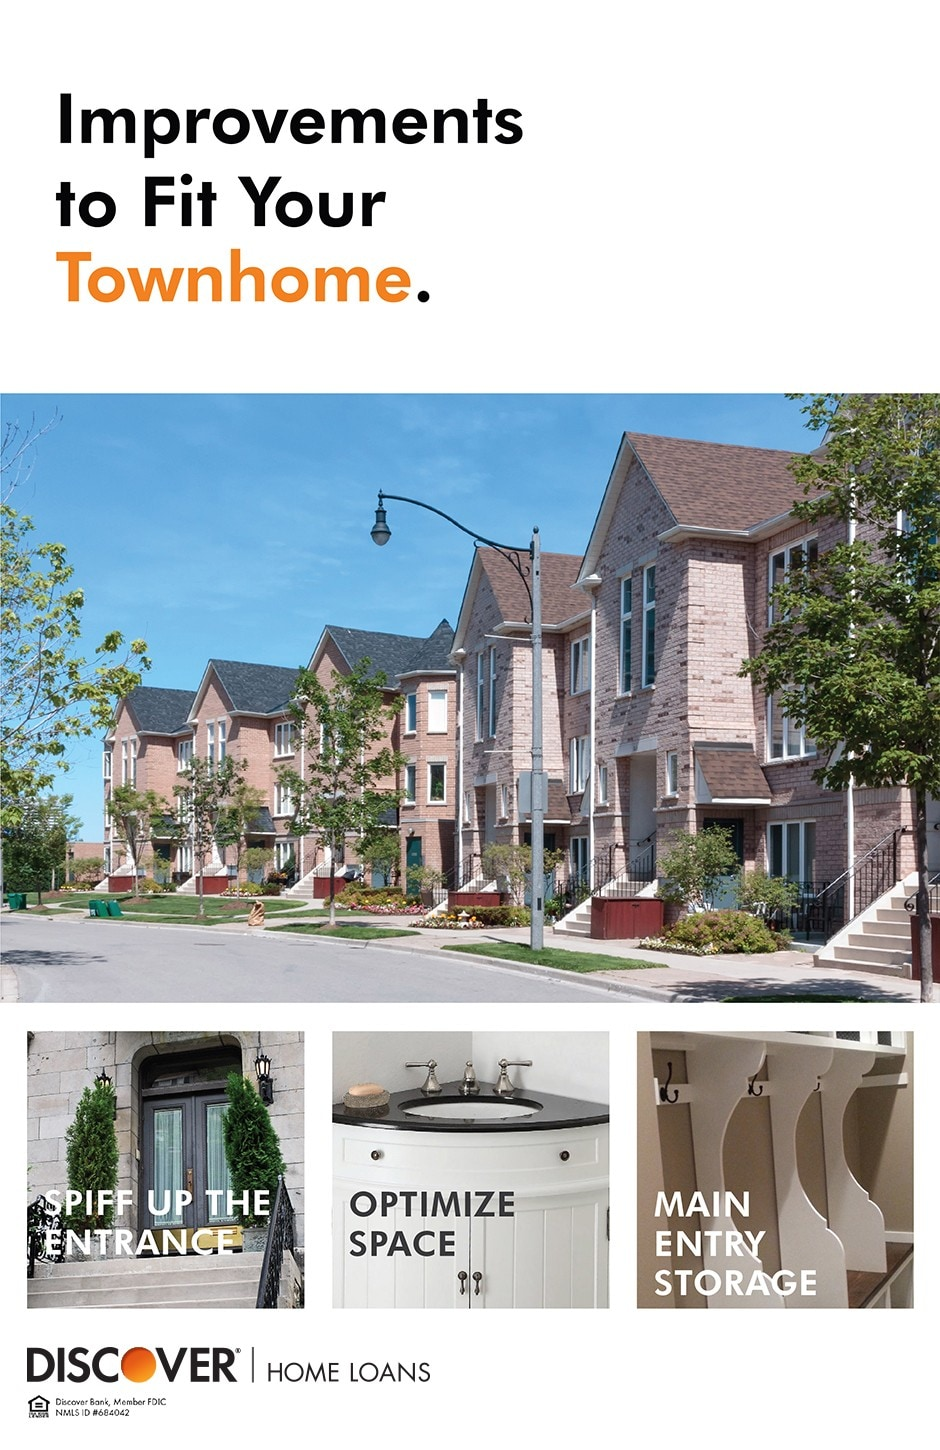 Improvements to Fit Your Townhome